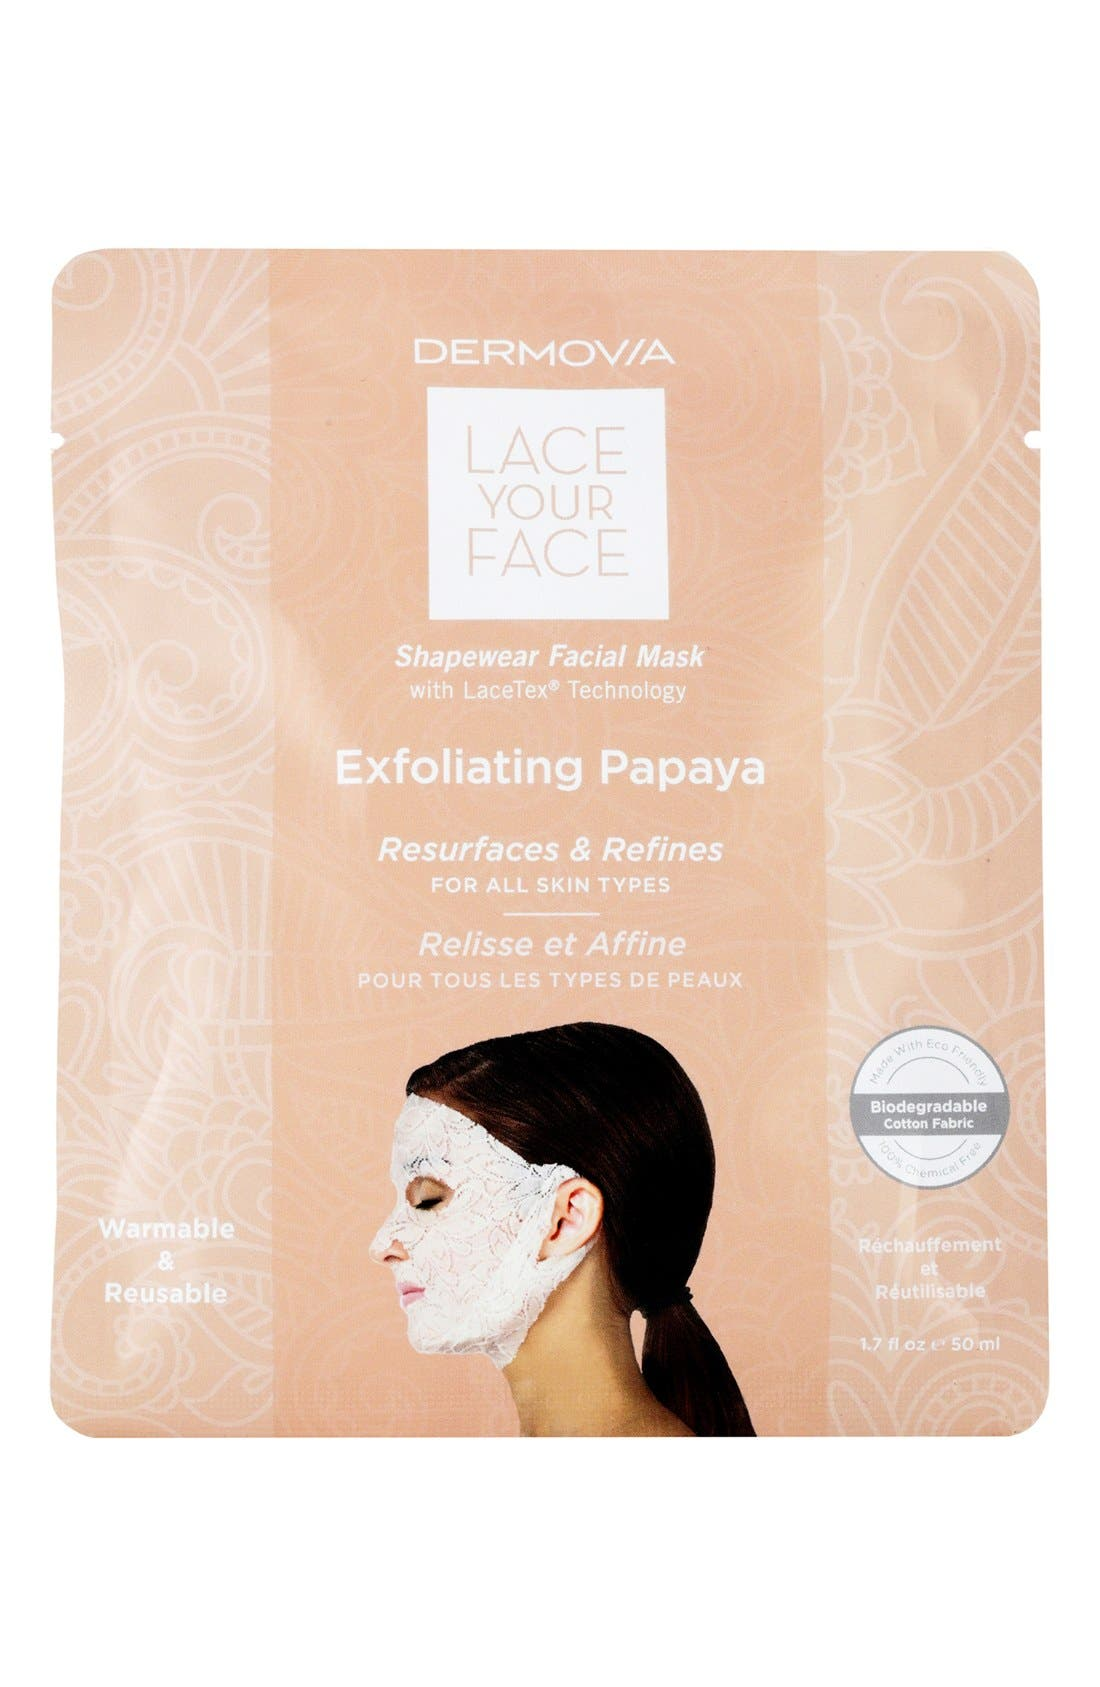 Dermovia Lace Your Face Exfoliating Papaya Compression Facial Mask